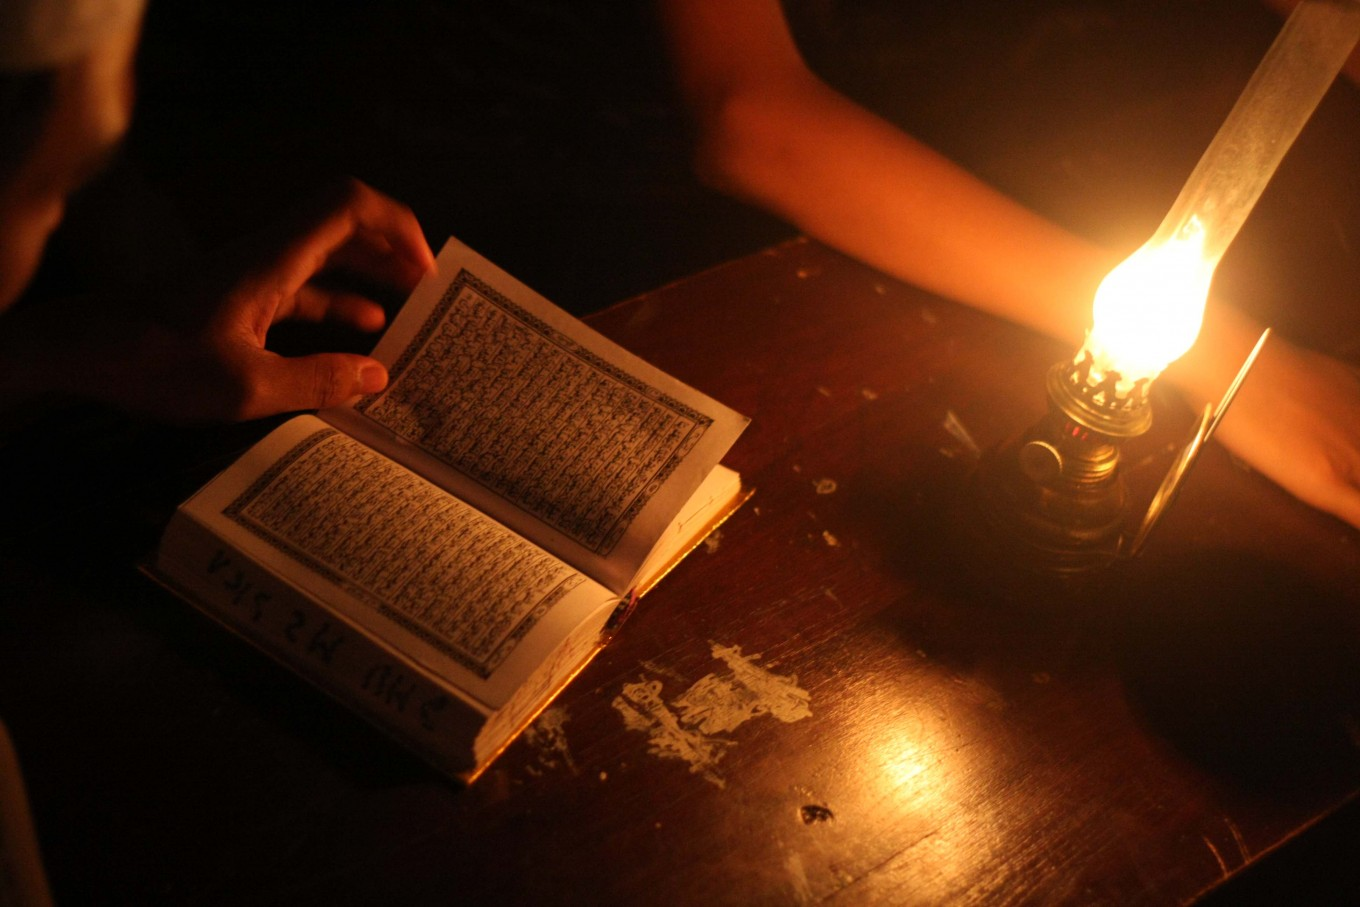 A student recites the Quran outdoors with an oil lamp at Mojosongo, Surakarta, Central Java, on June 11. JP/Maksum Nur Fauzan